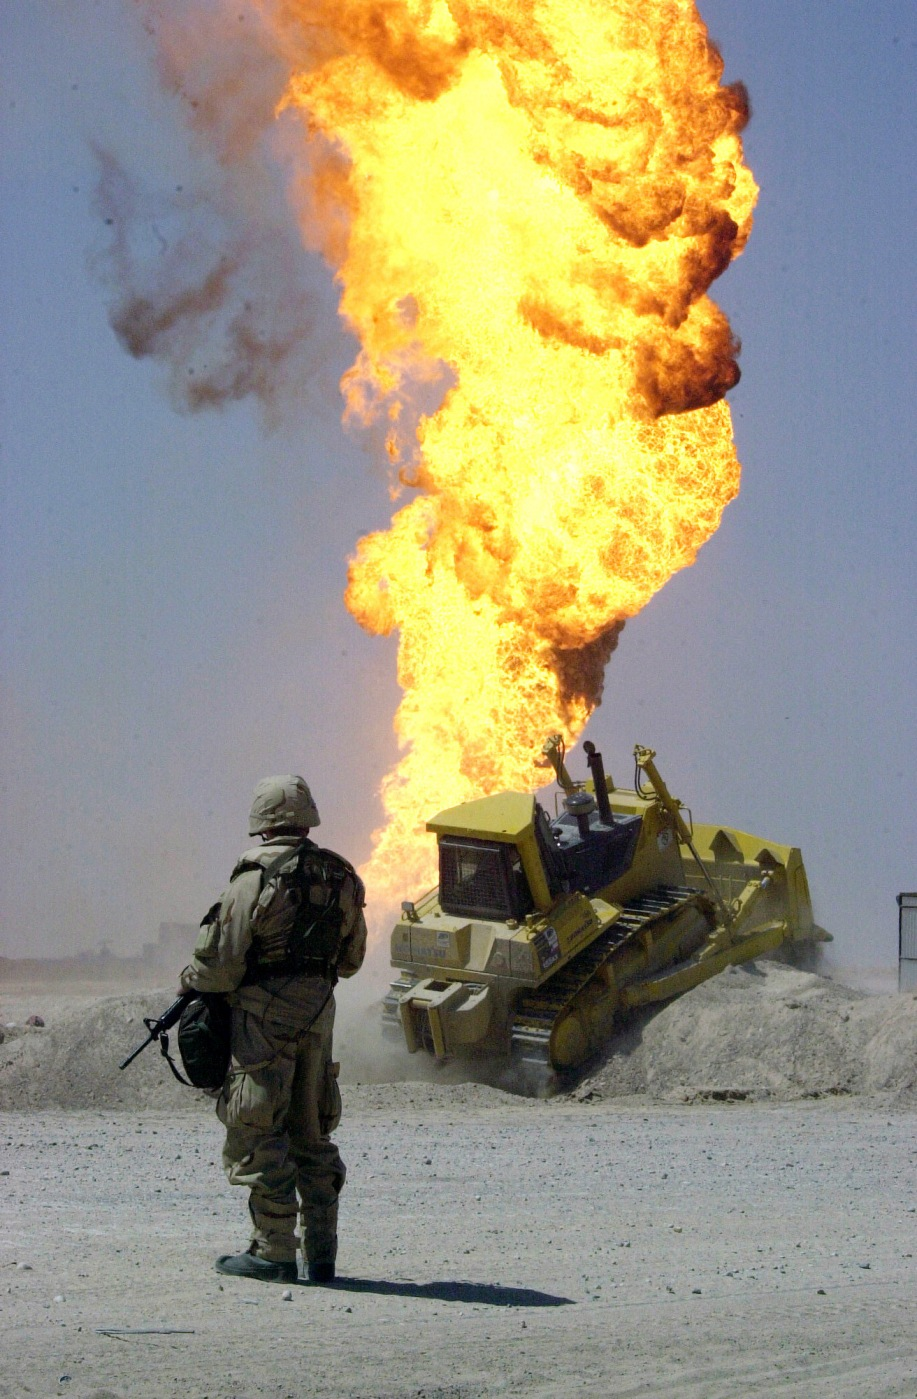 030402-N-5362A-009